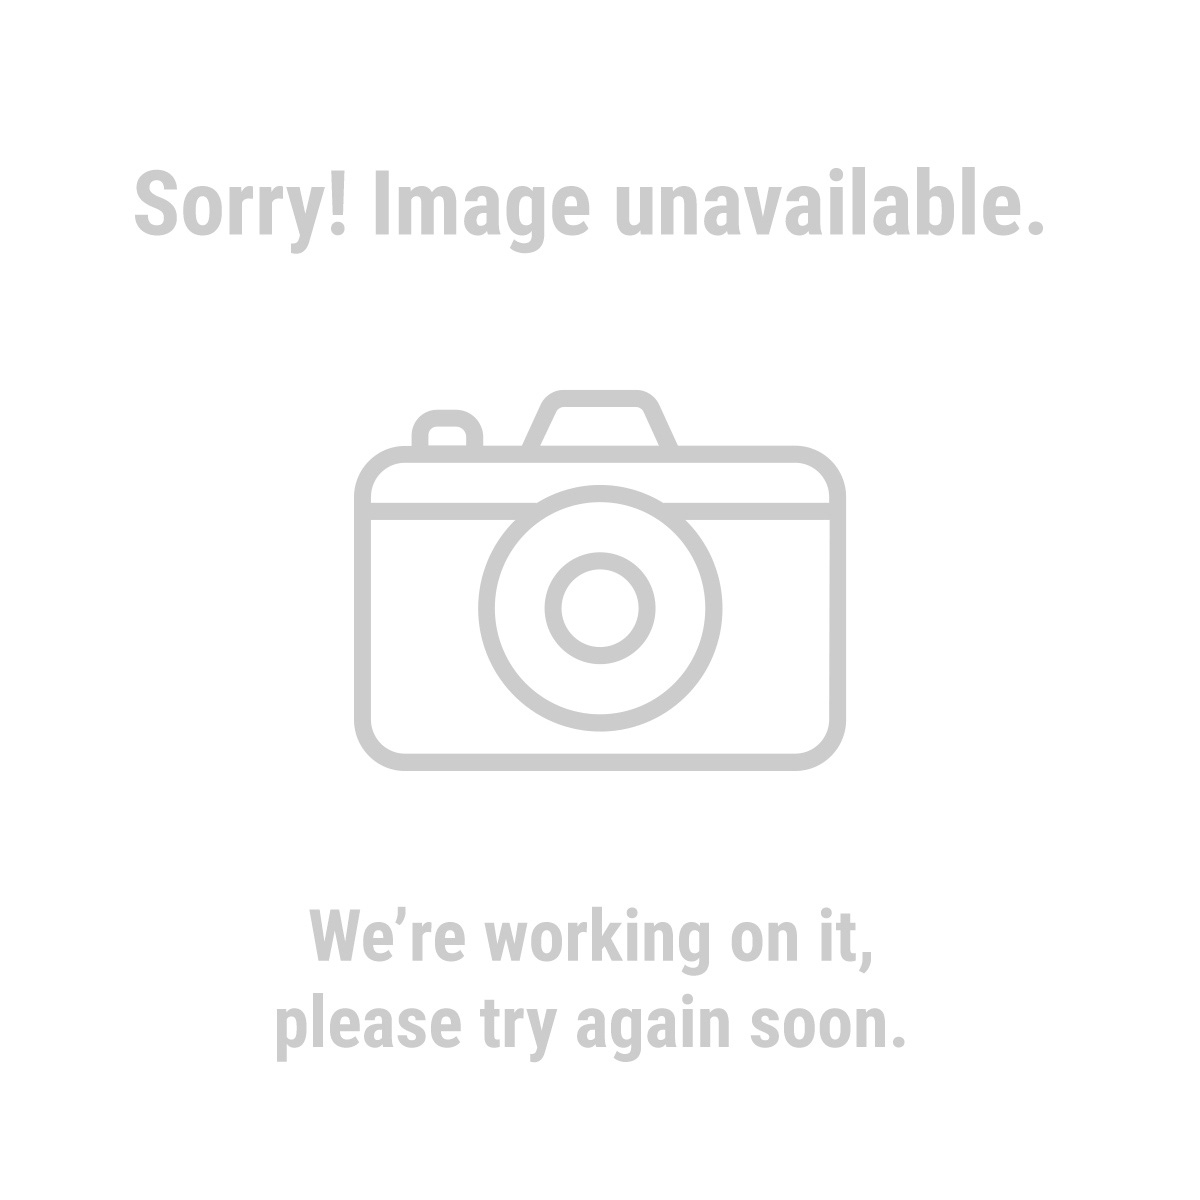 Bunker Hill Security 69644 36 LED Solar Security Light